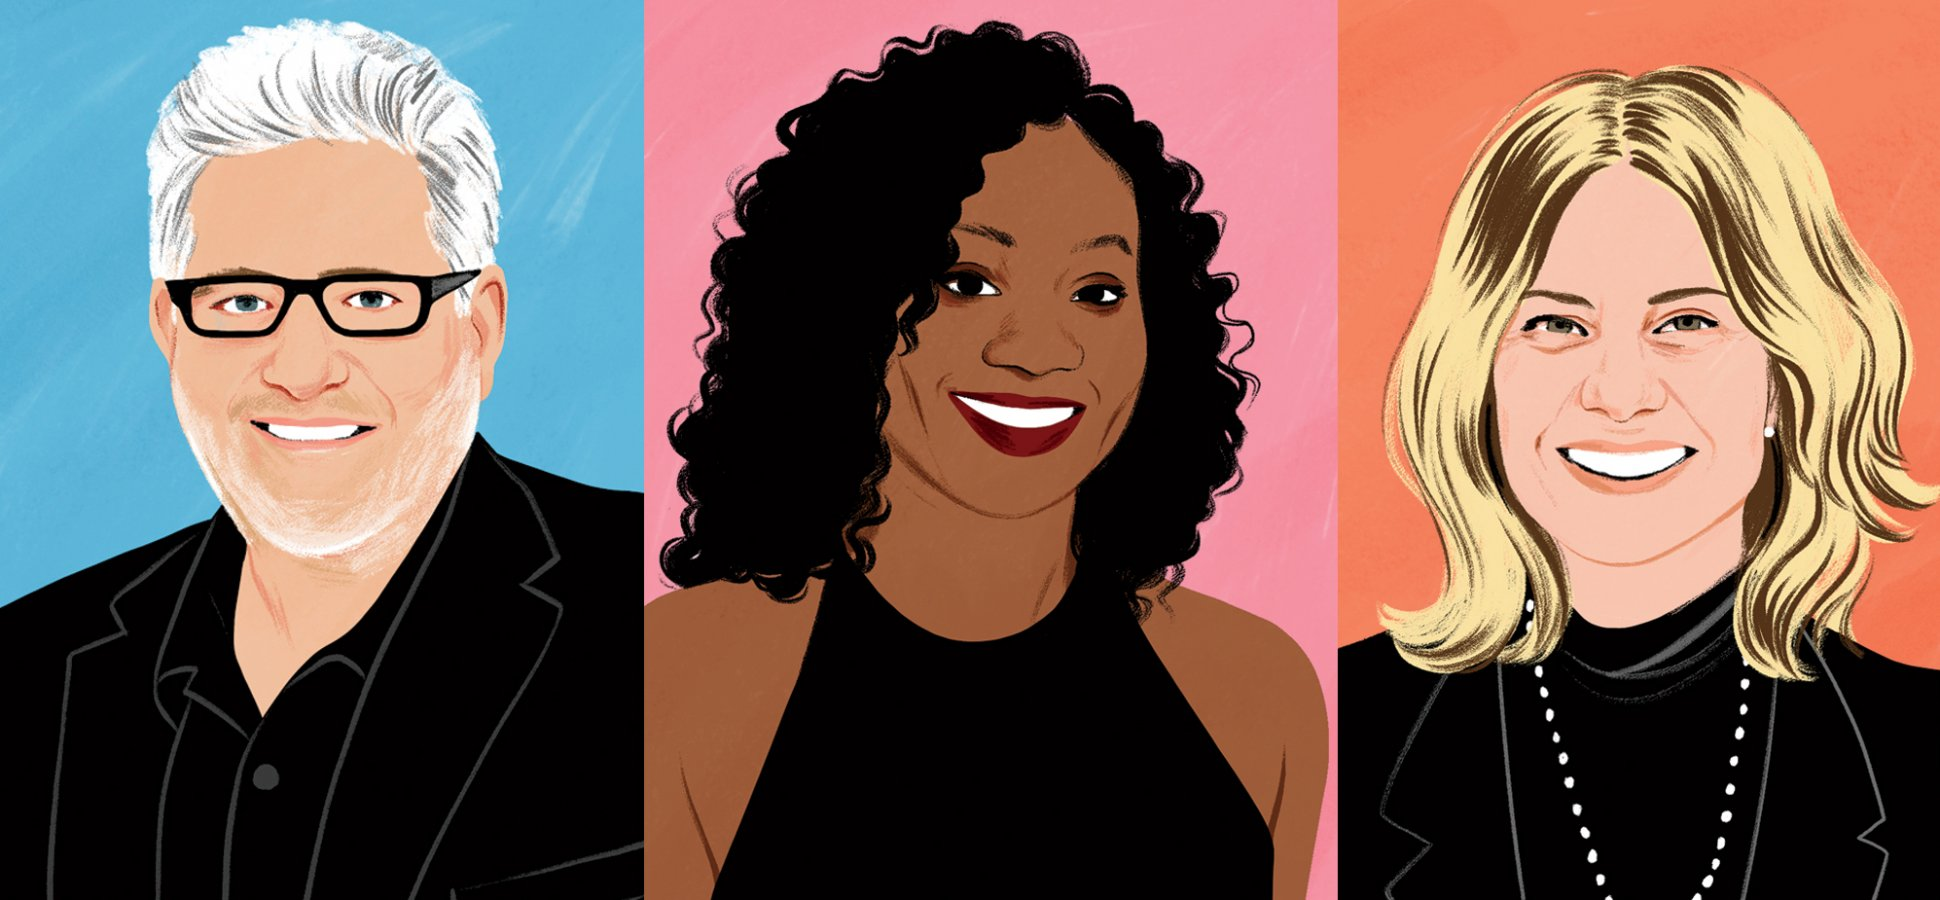 The Secrets to a Successful Pitch, From 9 Top Venture Capitalists